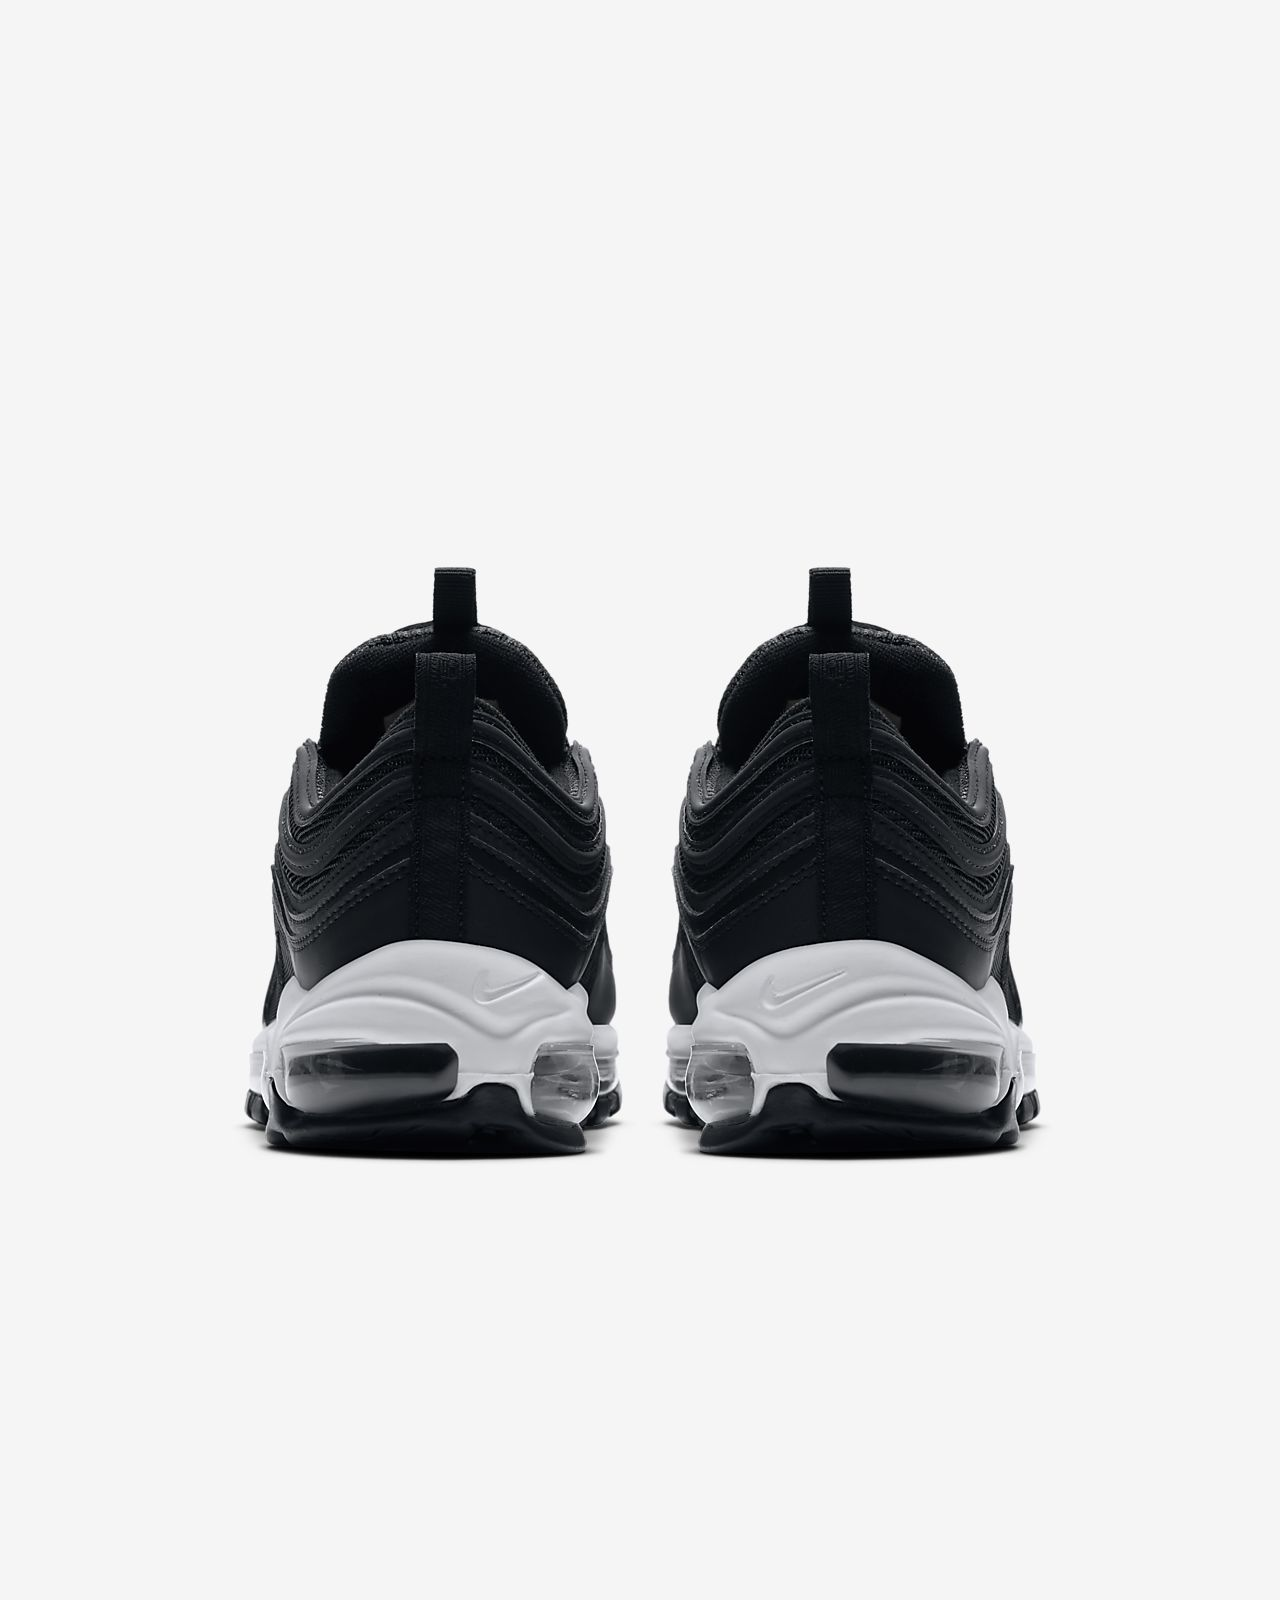 Cheap Nike Air Max 97 Triple Black Release Date 921733 001